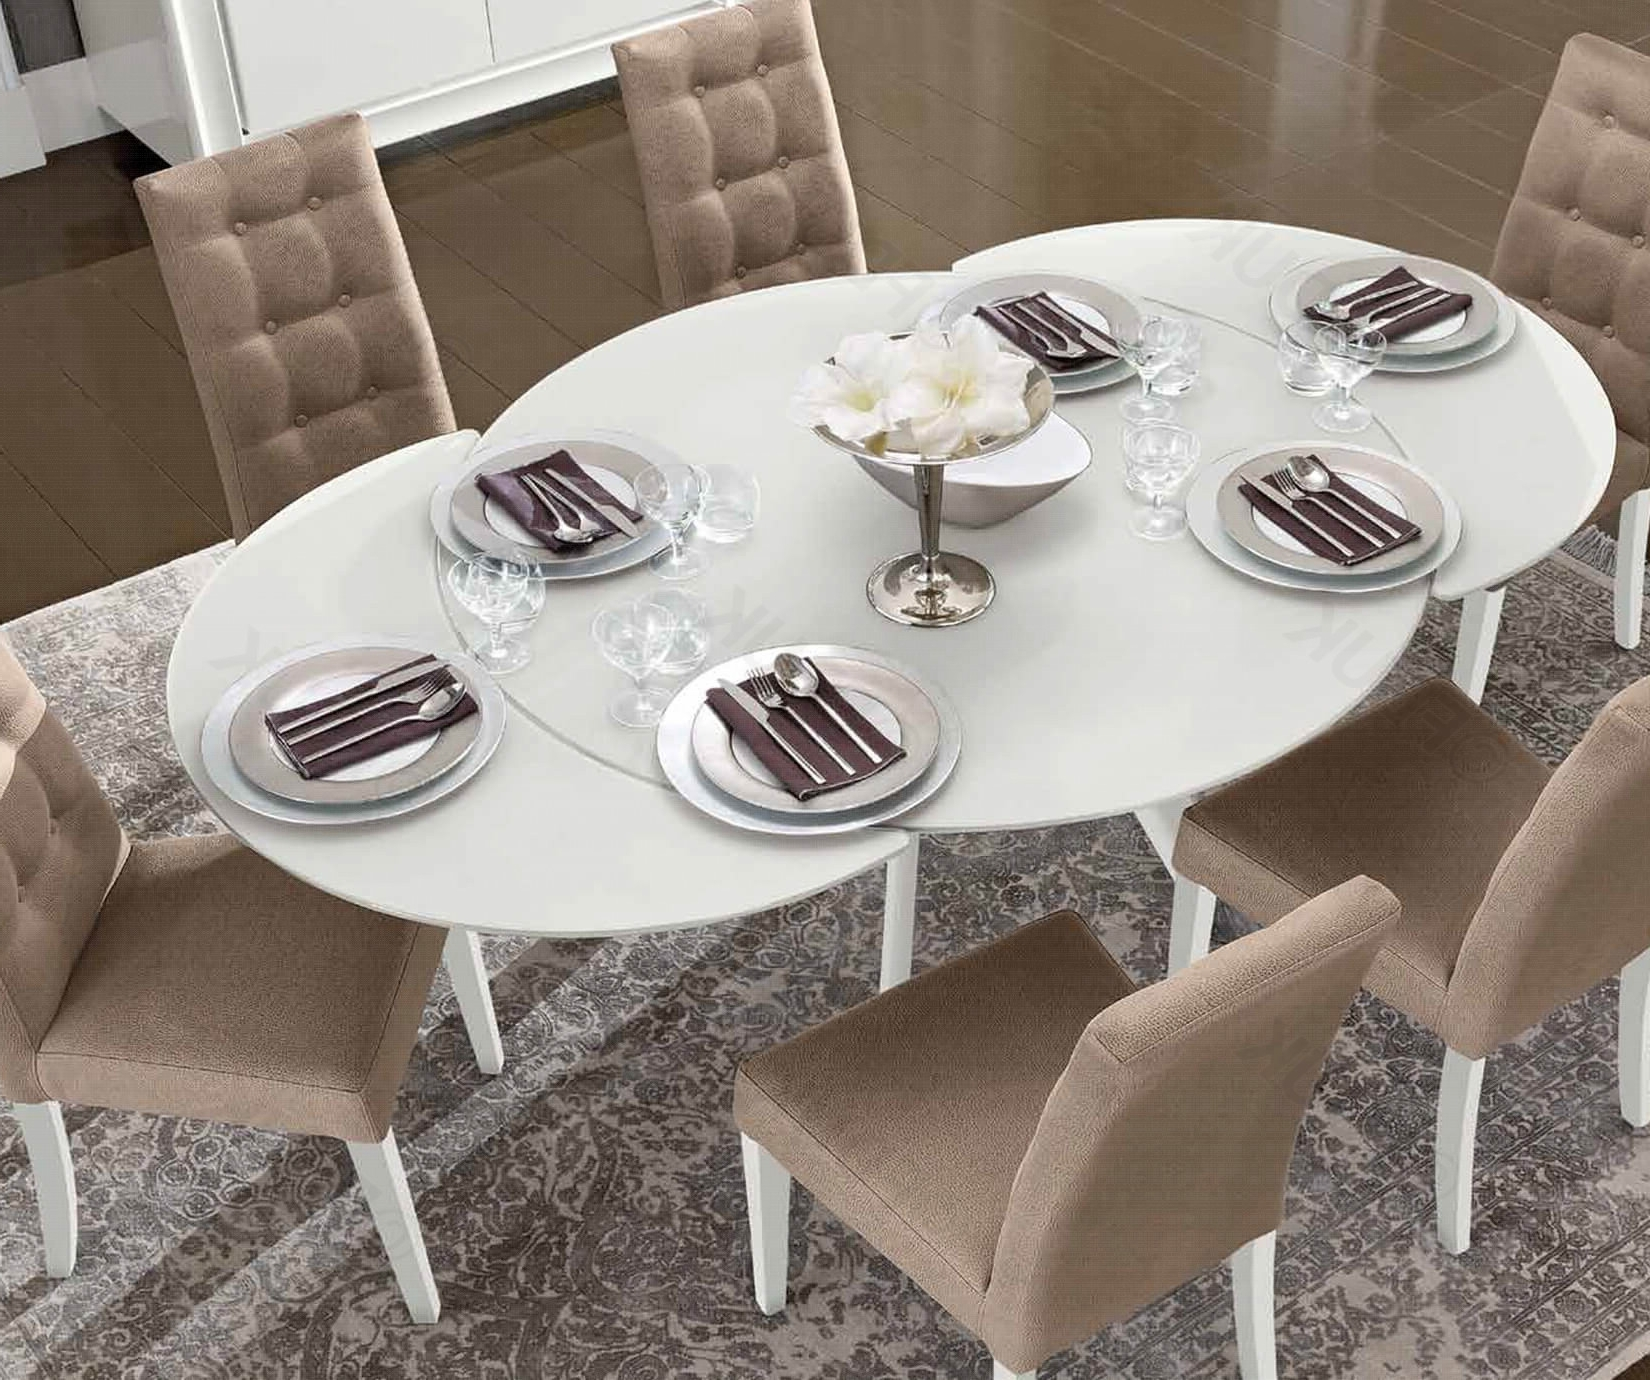 Dama Bianca White High Gloss Round Within Fashionable White High Gloss Dining Chairs (View 4 of 25)